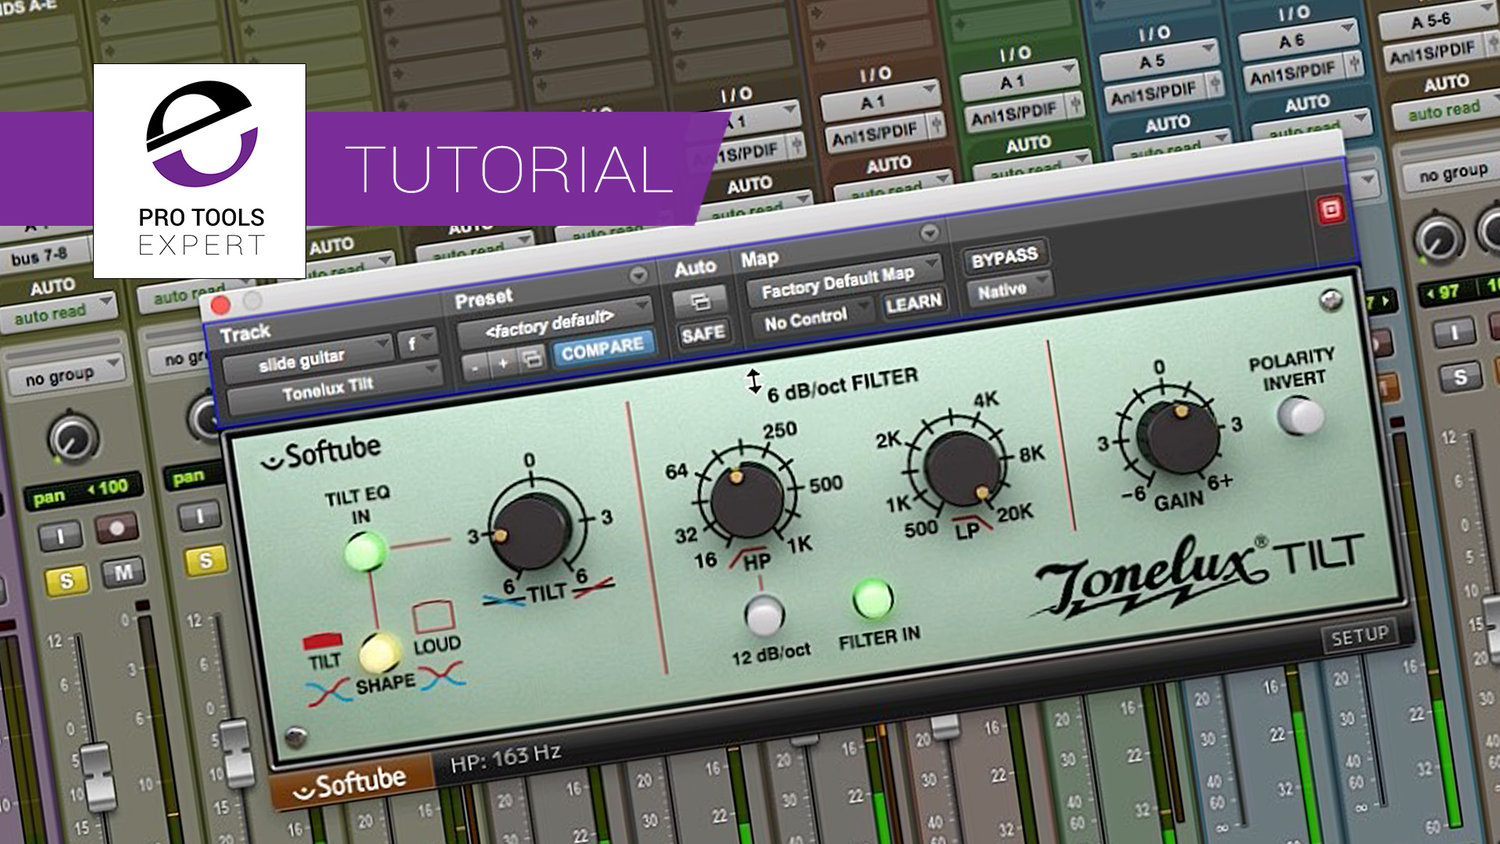 Tutorial - How To Quickly Achieve Track Separation Using The Tonelux